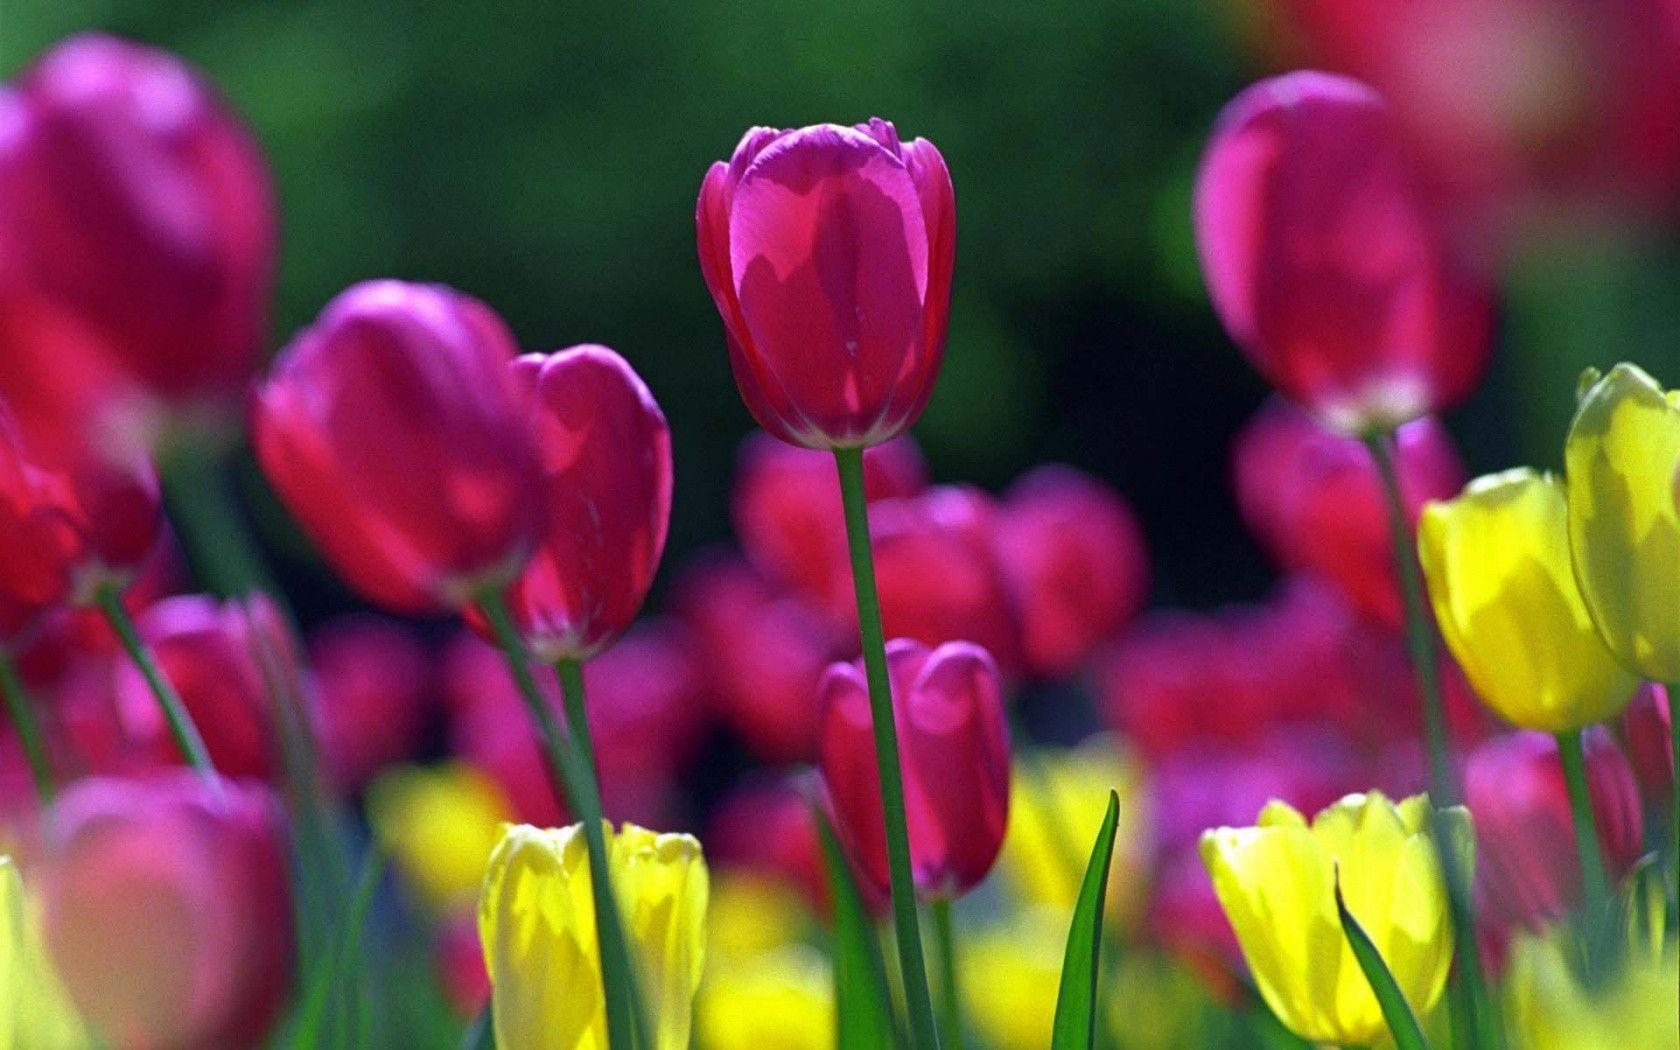 Spring screensavers wallpapers wallpaper cave spring flowers screensavers wallpaper beautiful sweet home mightylinksfo